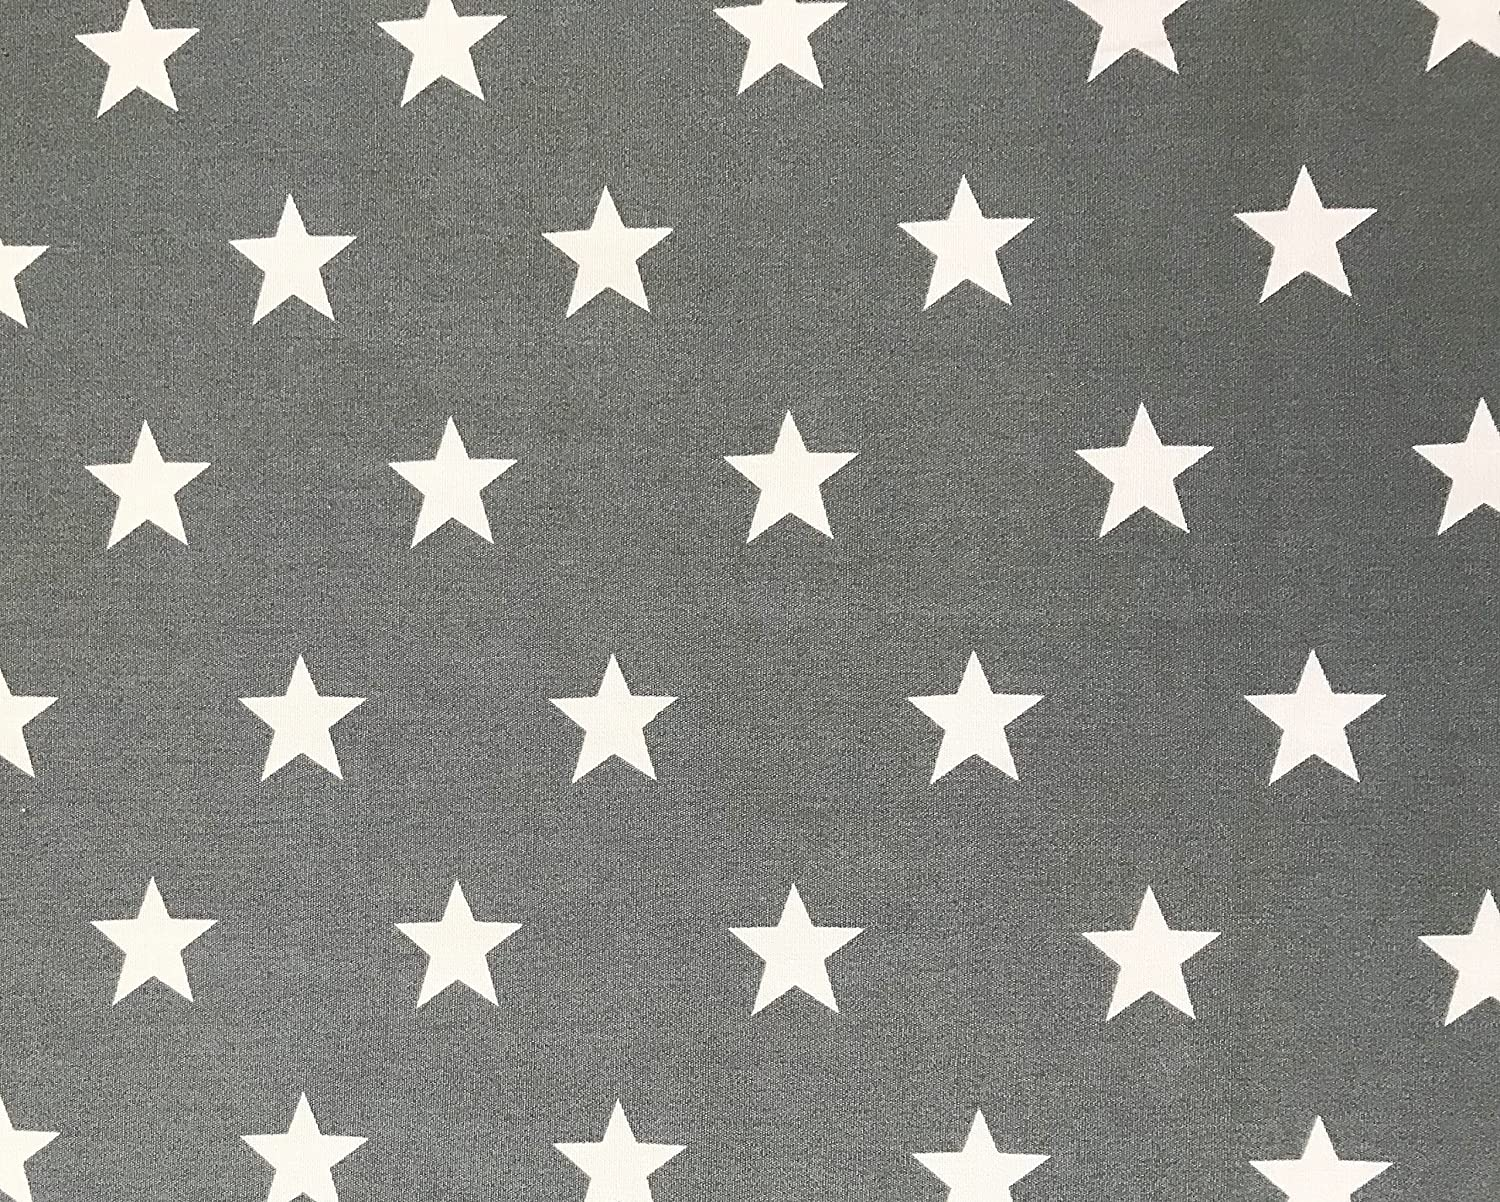 100/% Cotton Fabric Oddies Textile Rose /& Hubble White Stars on Grey Background 112cm wide